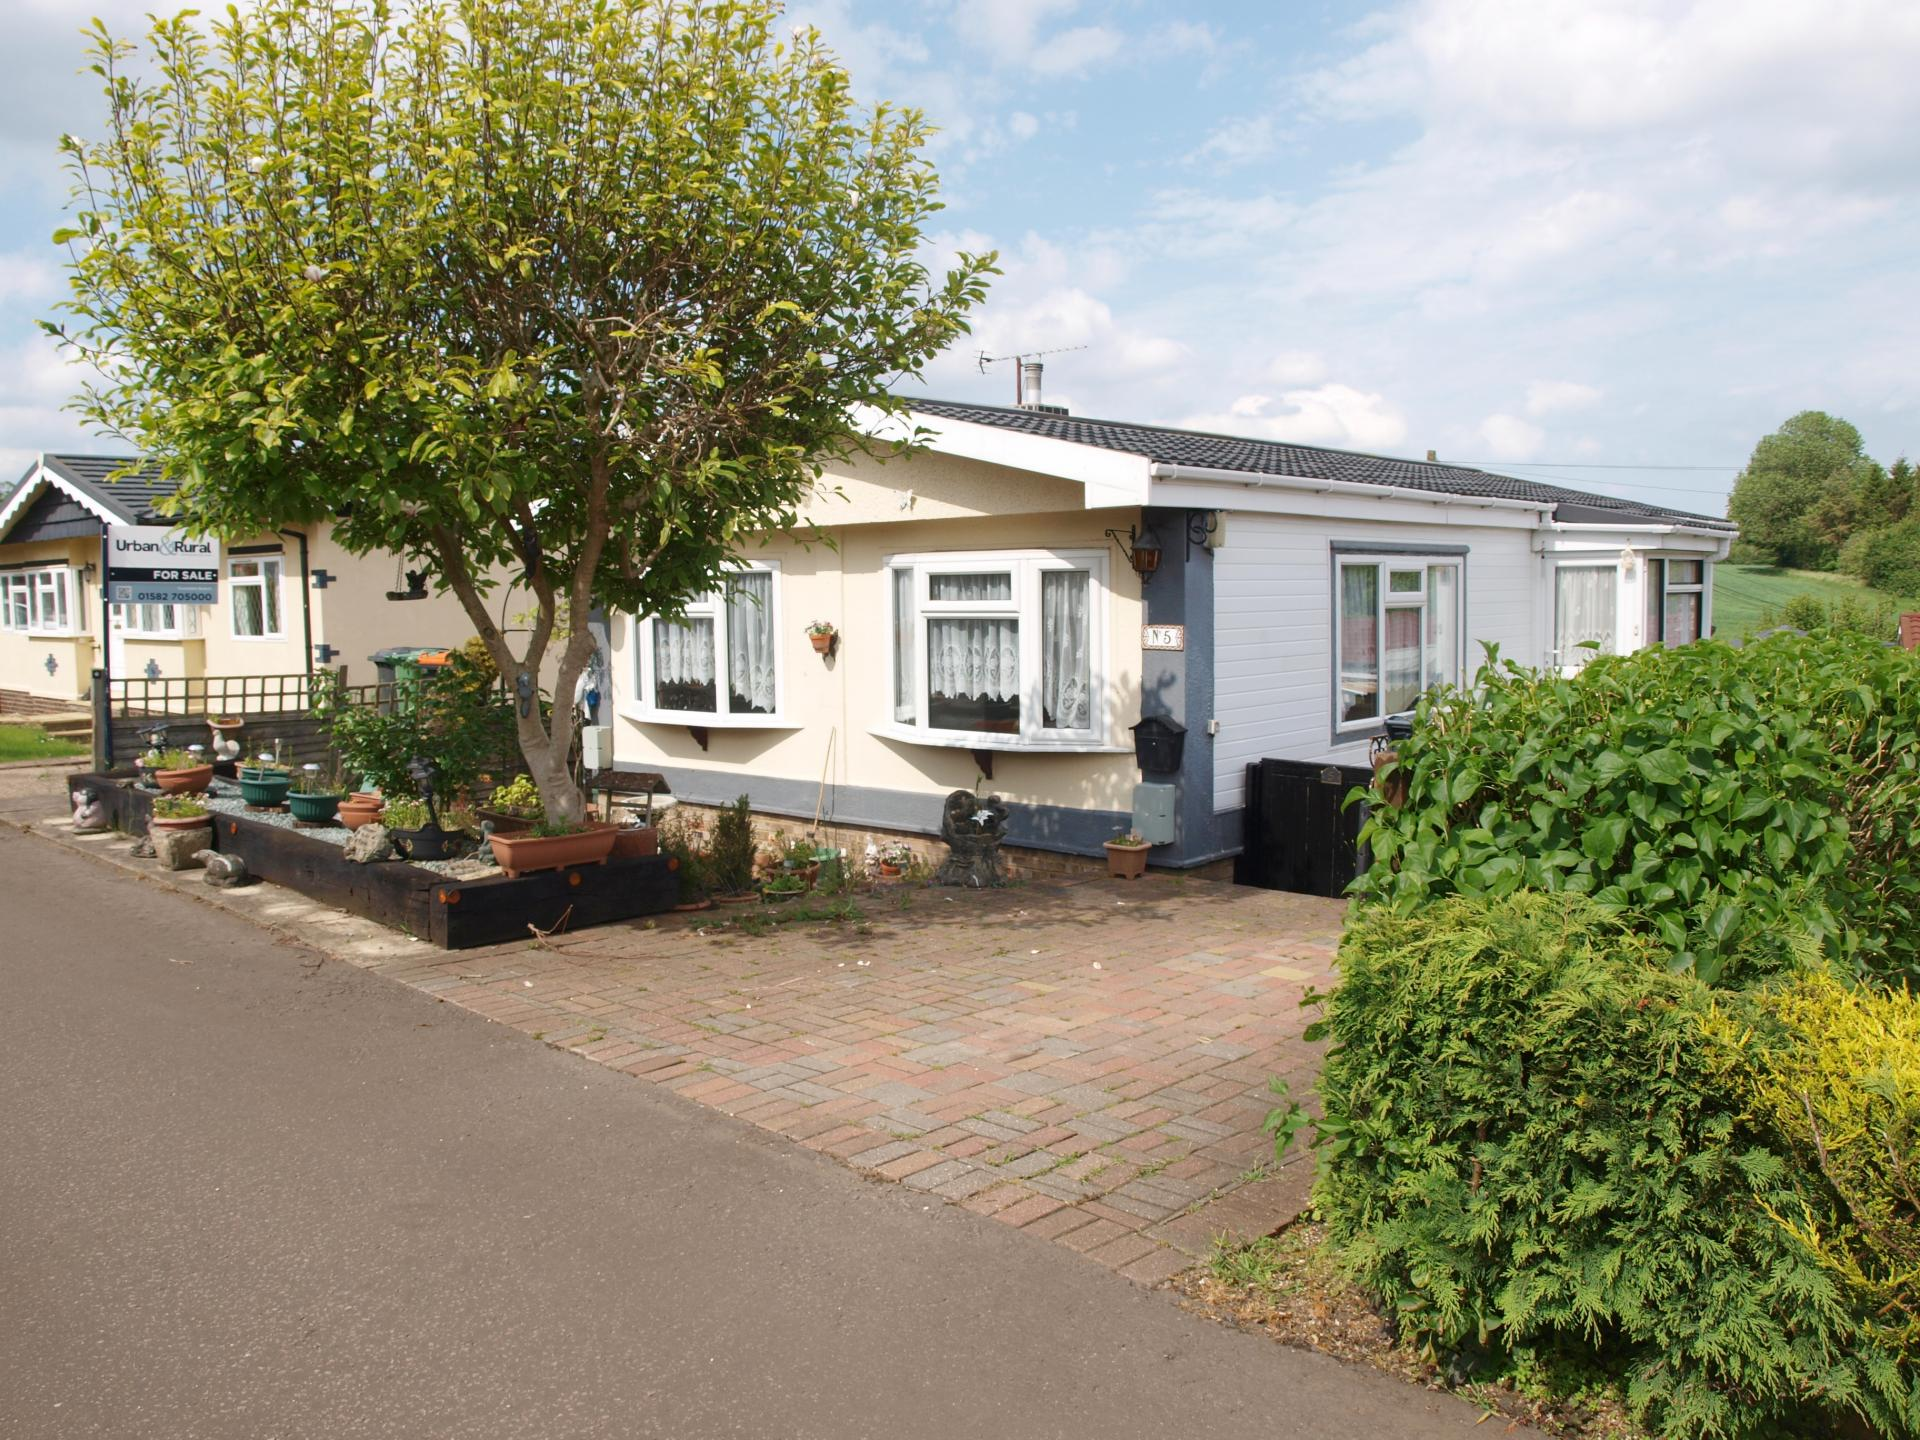 2 bedroom detached house for sale in dunstable for How much is a bedroom worth in an appraisal